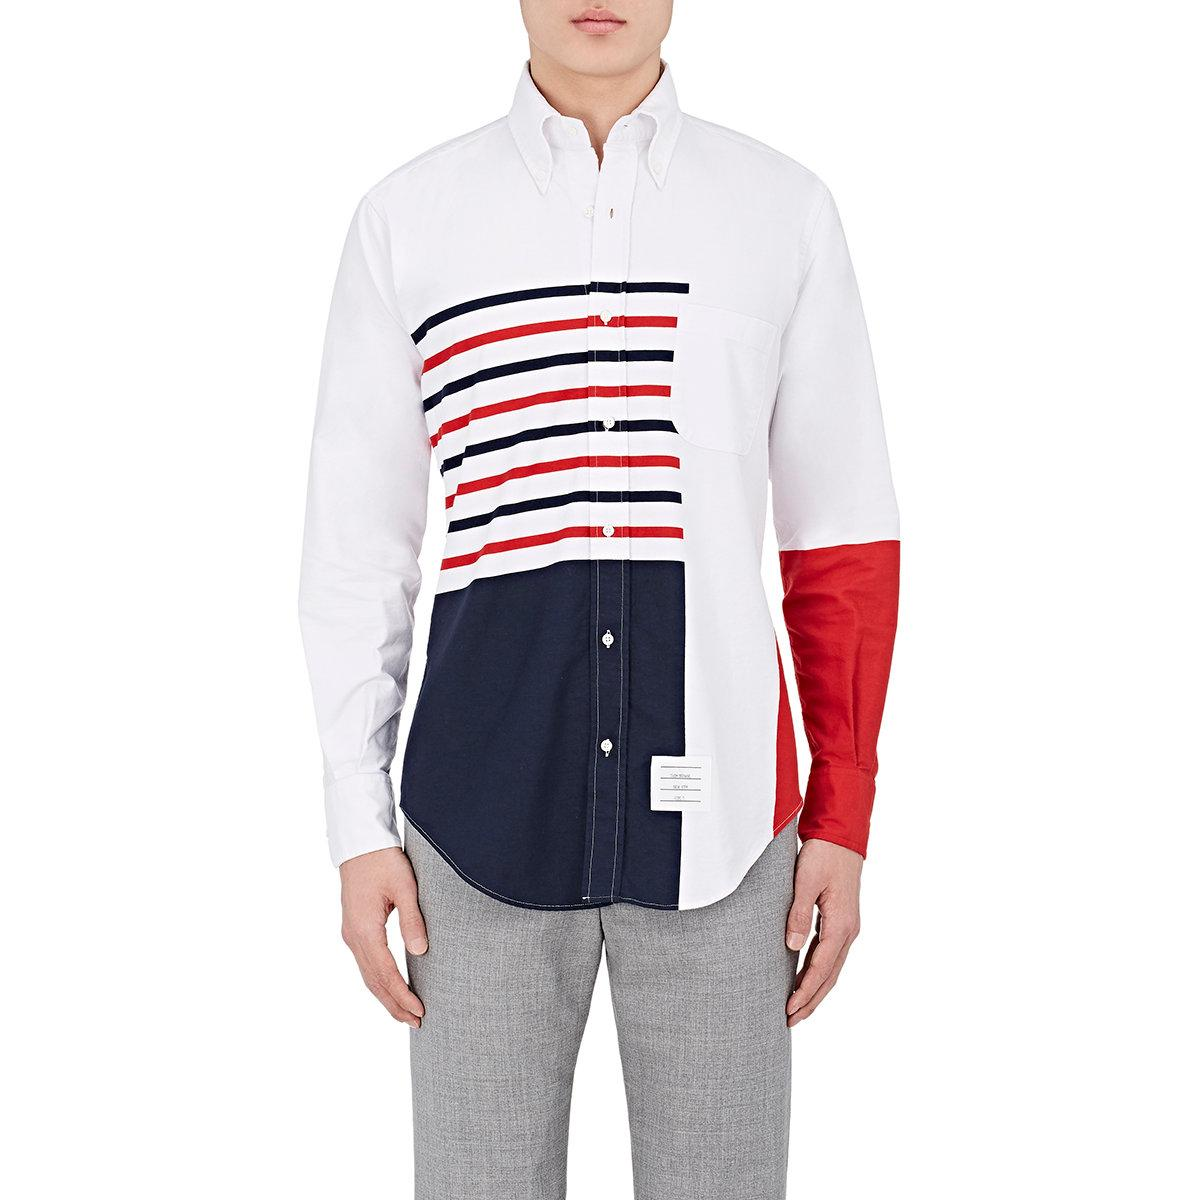 Thom browne striped cotton oxford shirt in white for men for Thom browne shirt sale